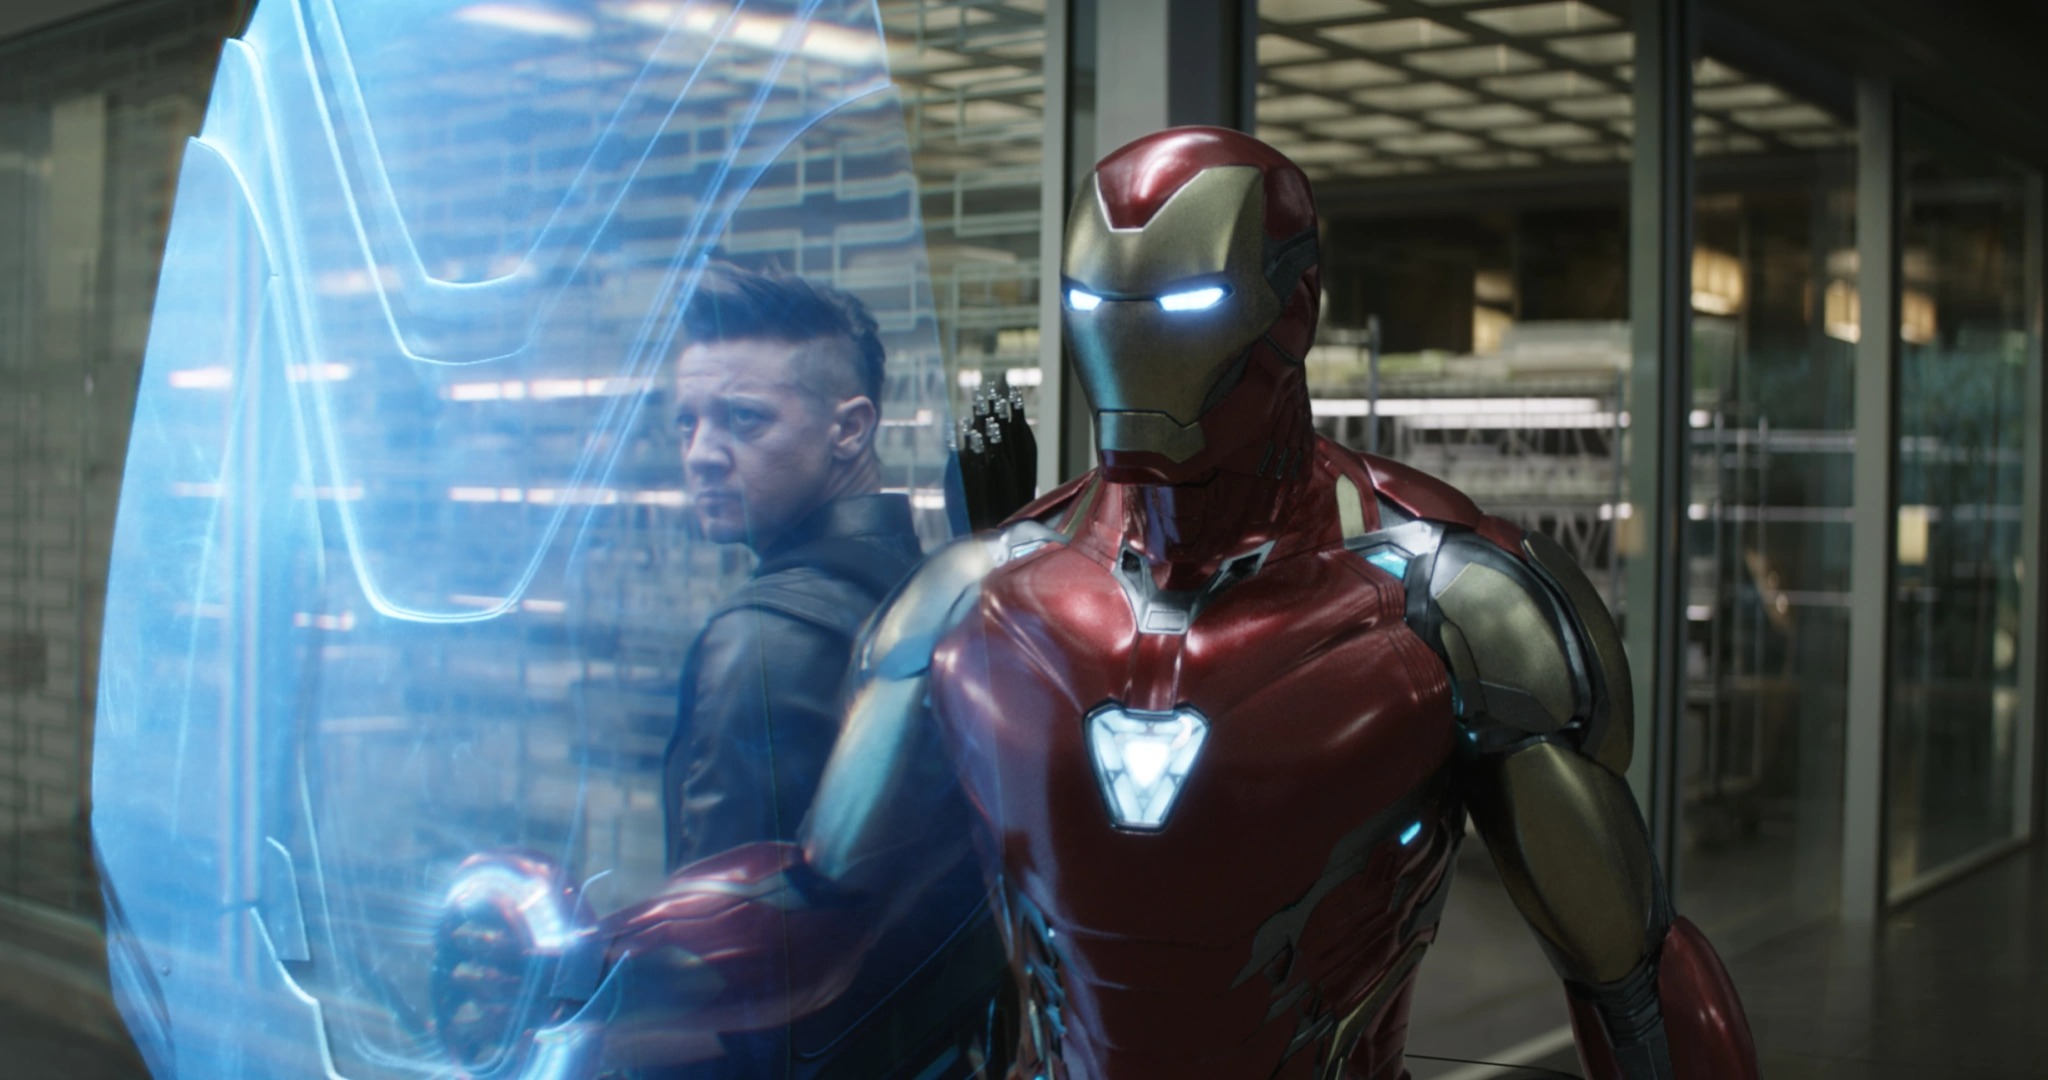 Iron man, in a red and gold suit with a glowing heart-shaped arc reactor, projects a blue shield. Hawkeye is in the background. They are in a lab.